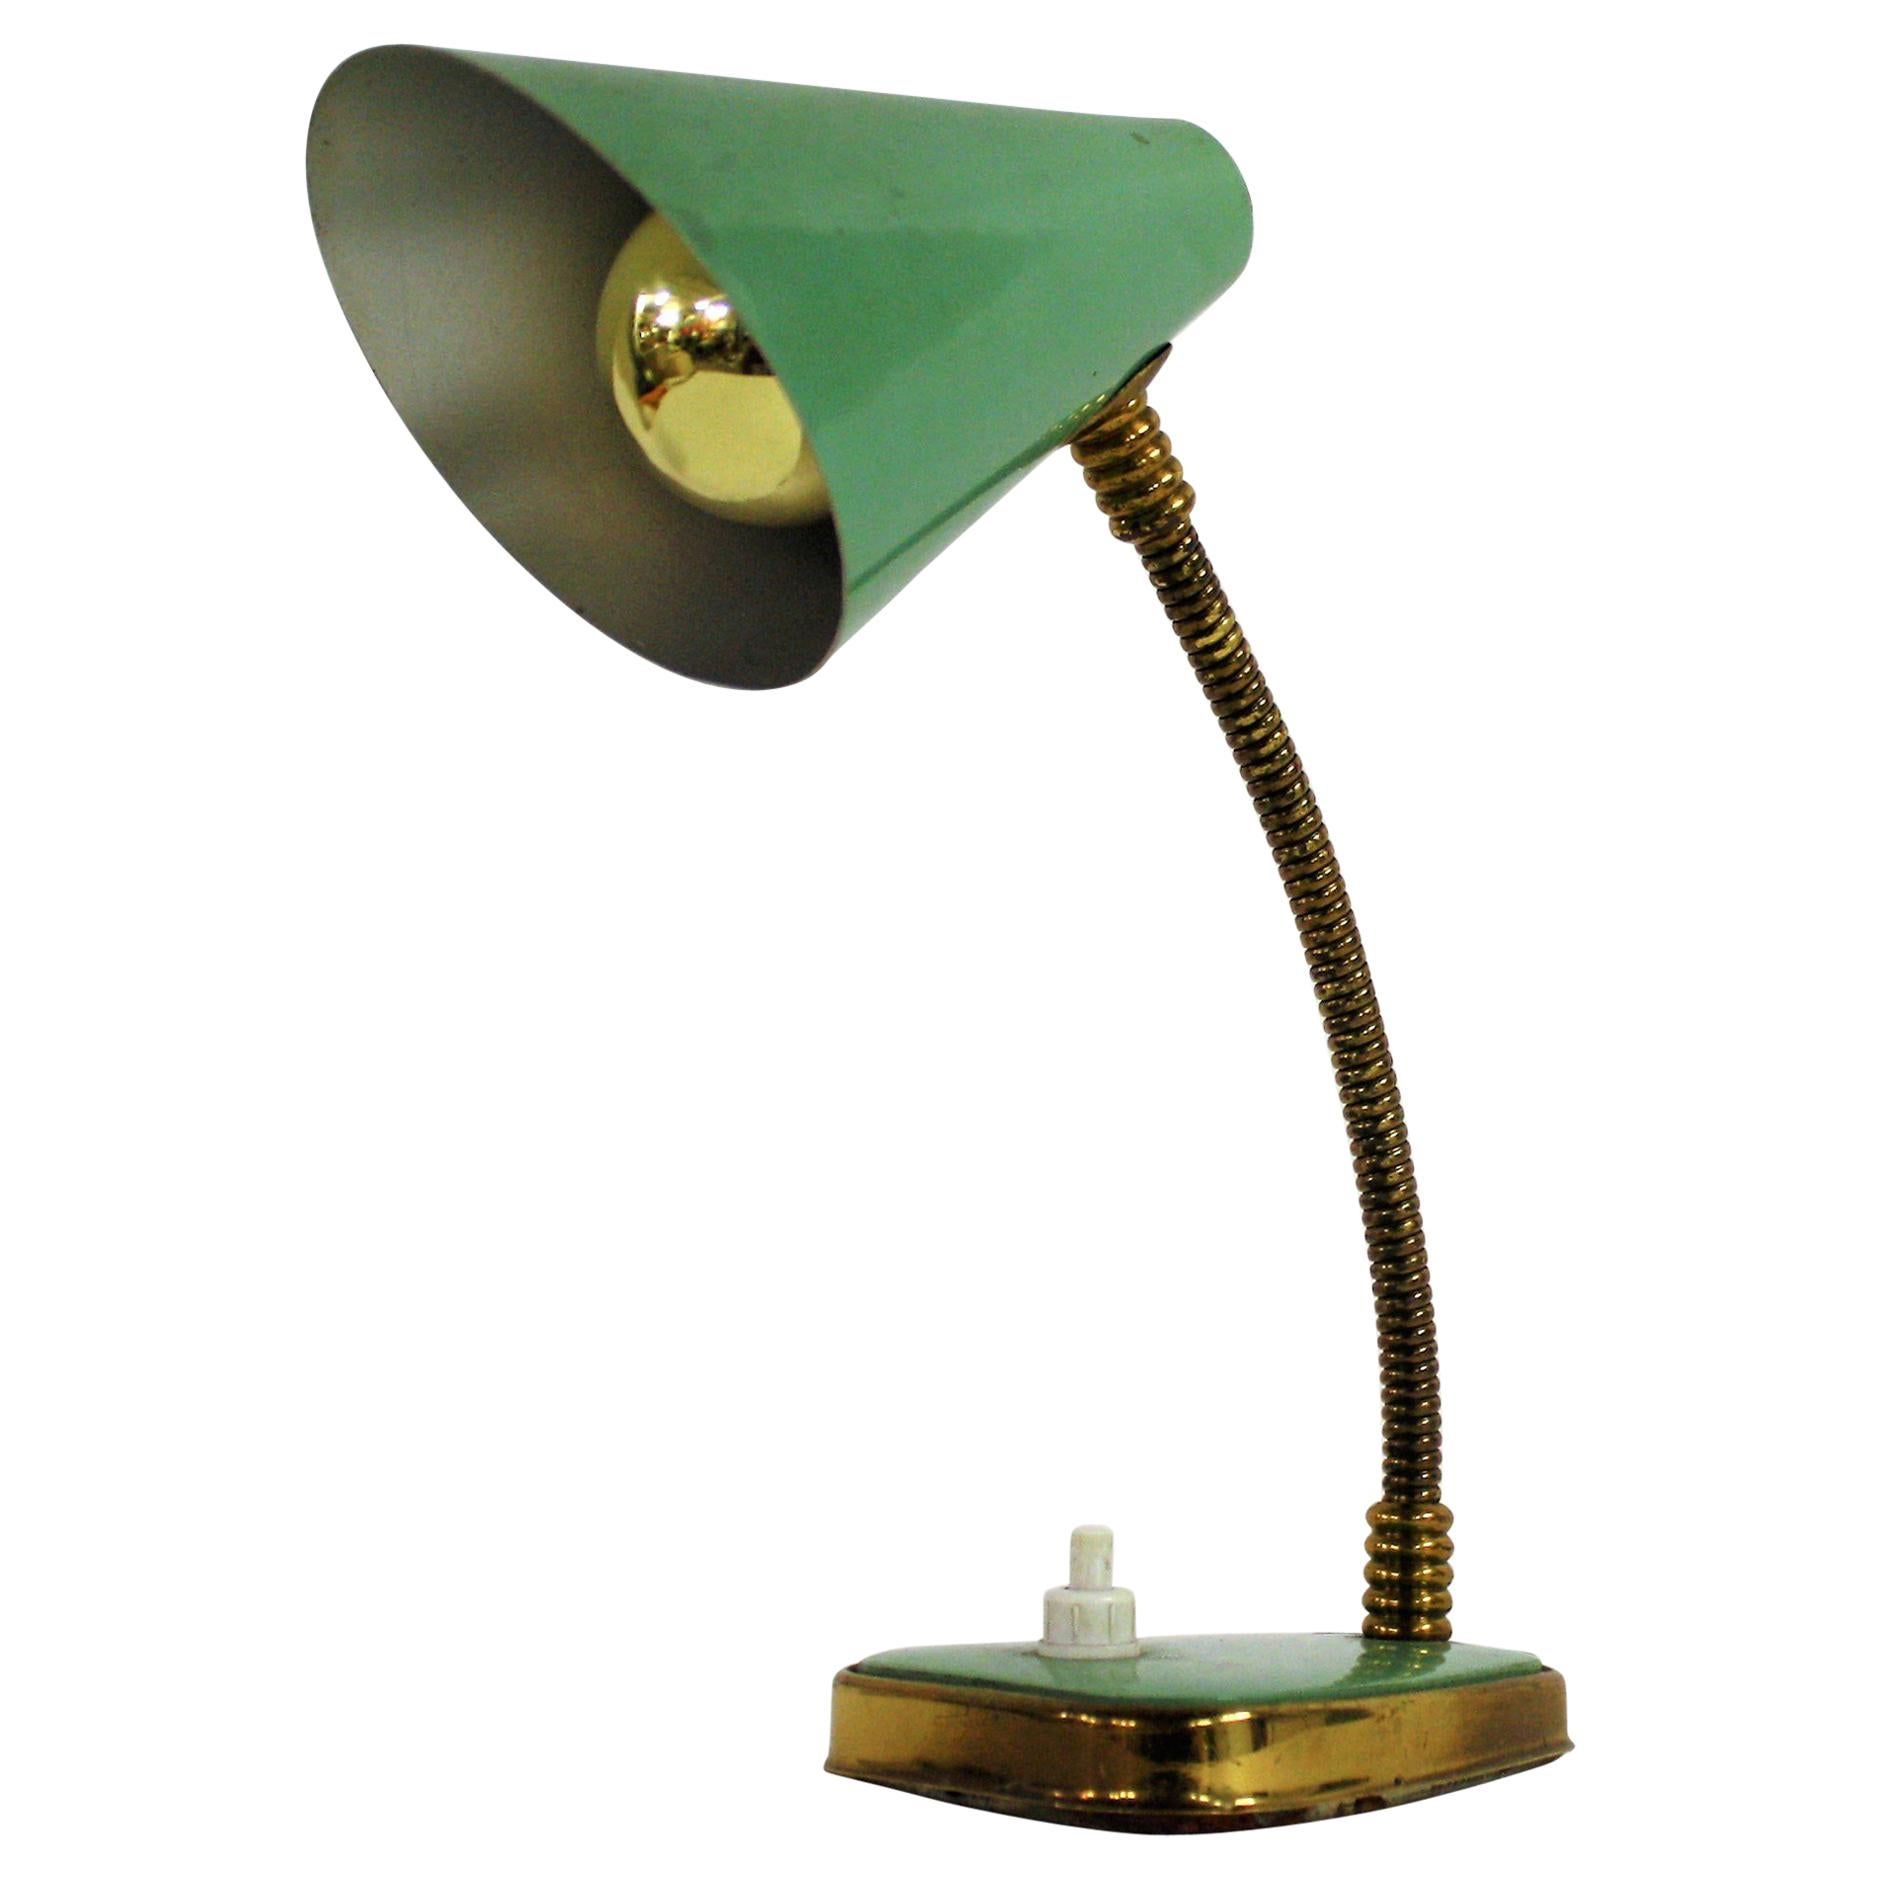 Vintage Table Lamps Small Green Vintage Desk Lamp Made In Italy 1950s